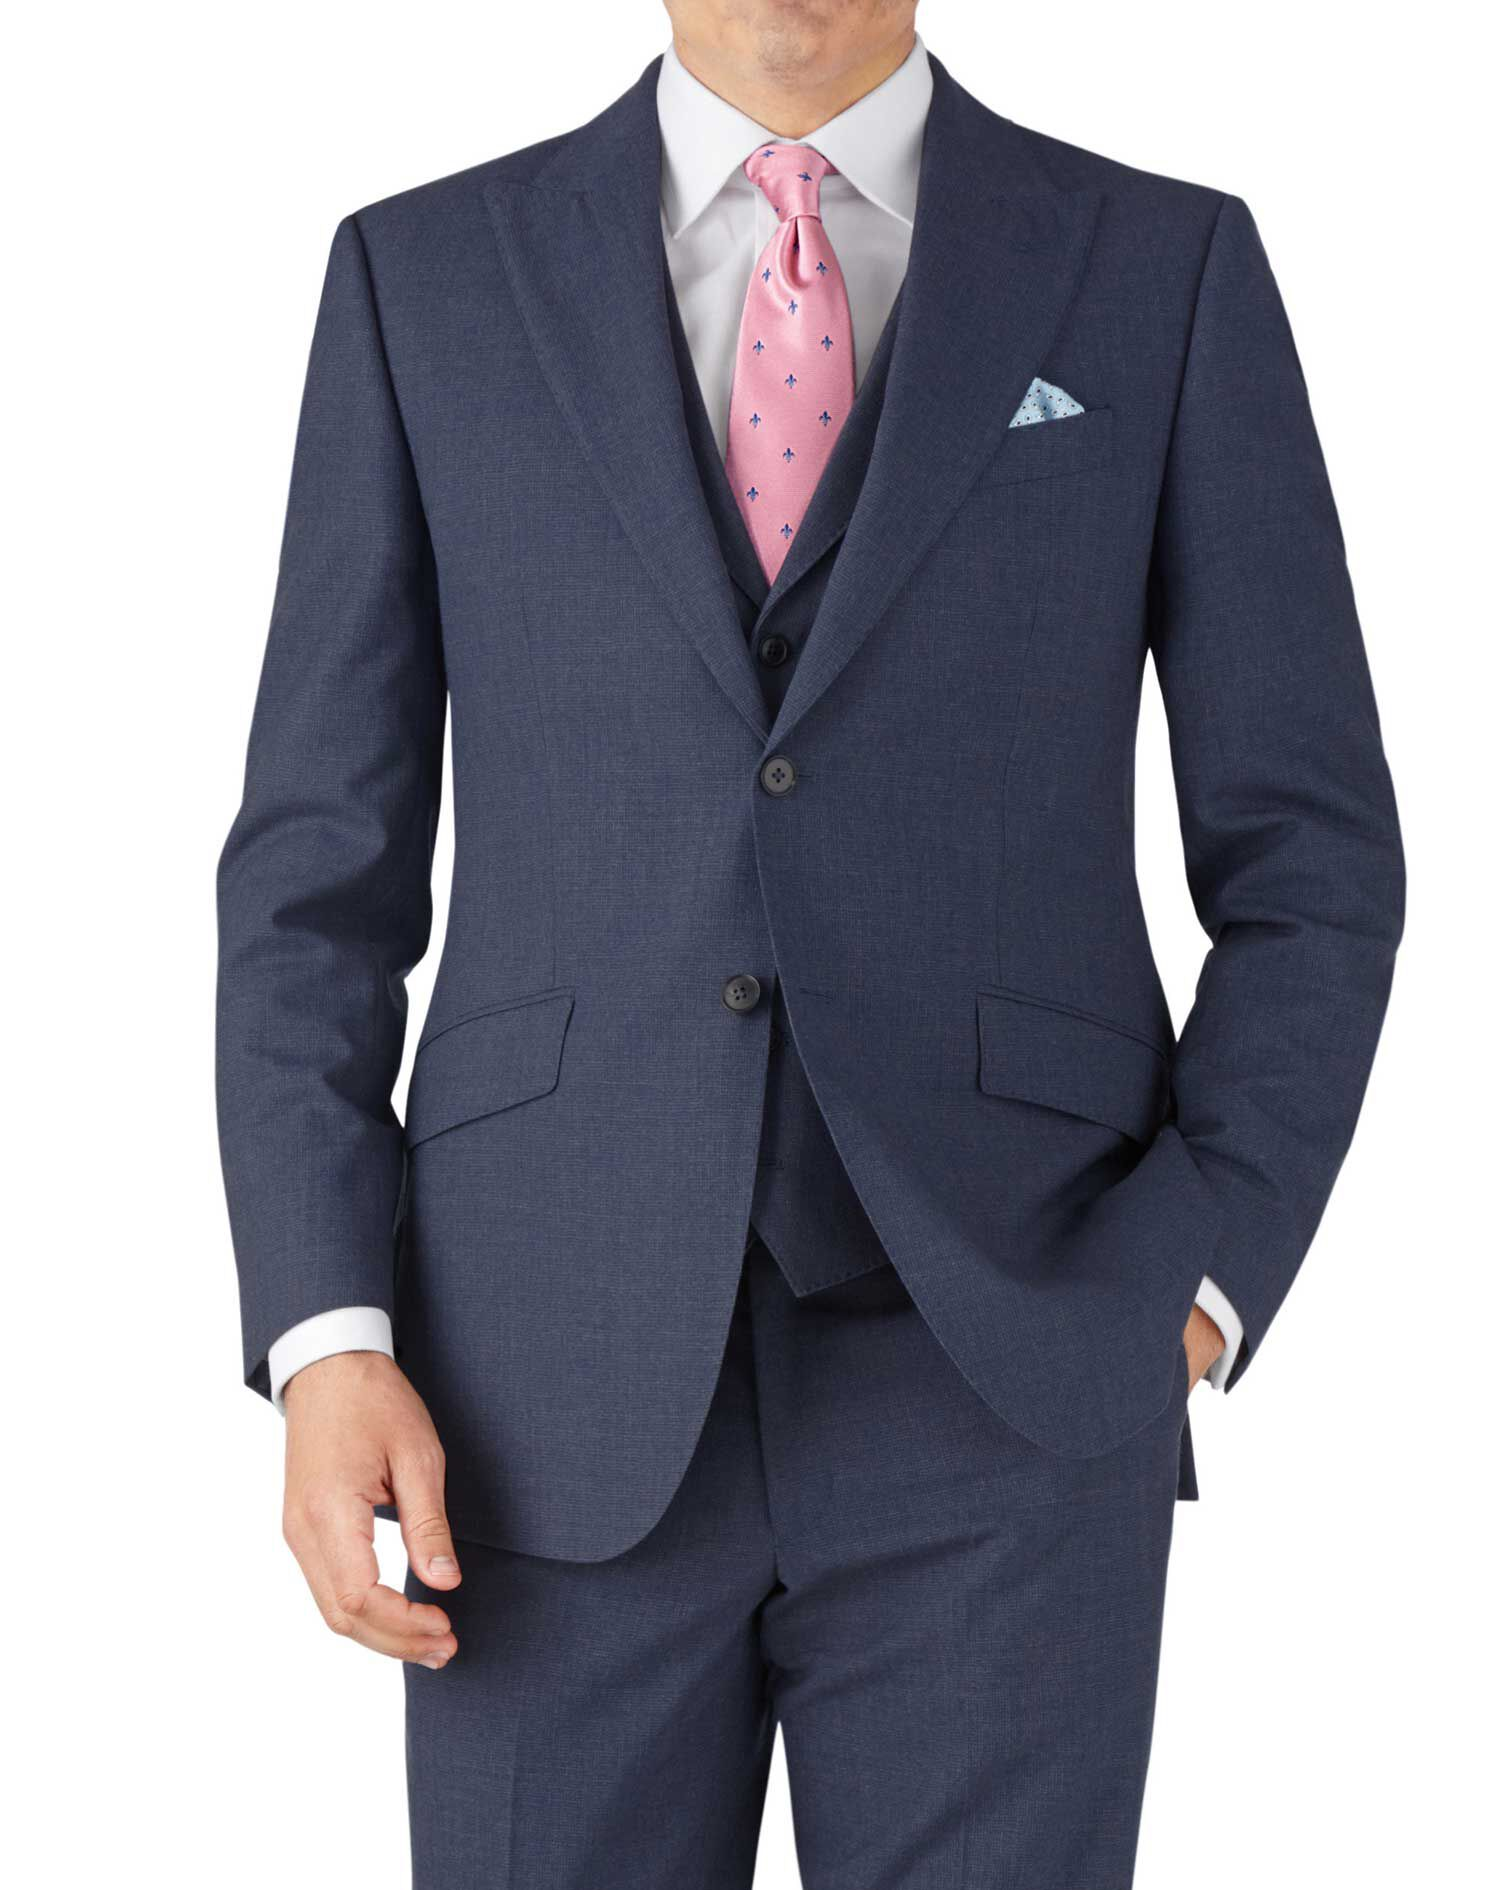 Airforce Blue Puppytooth Classic Fit Panama Business Suit Wool Jacket Size 36 by Charles Tyrwhitt